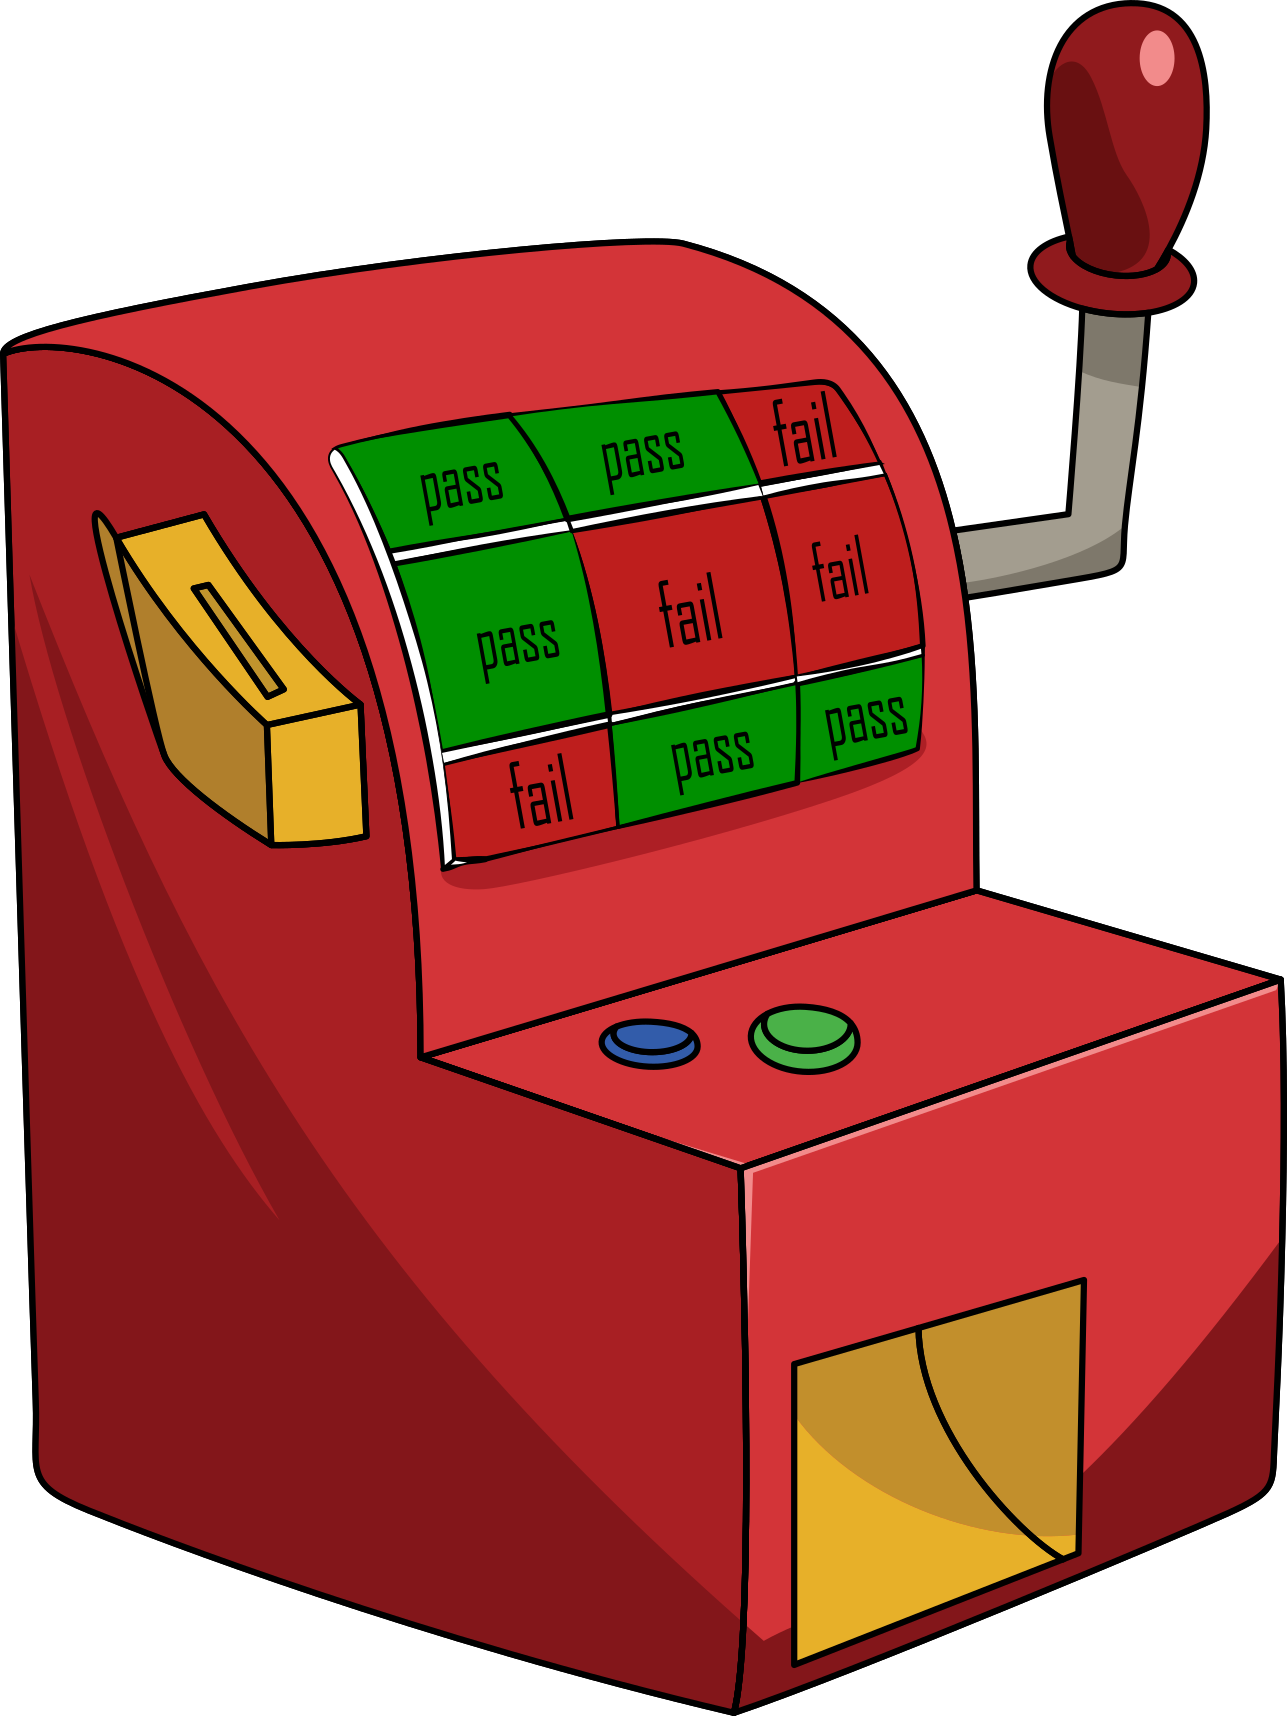 Slot machine clipart